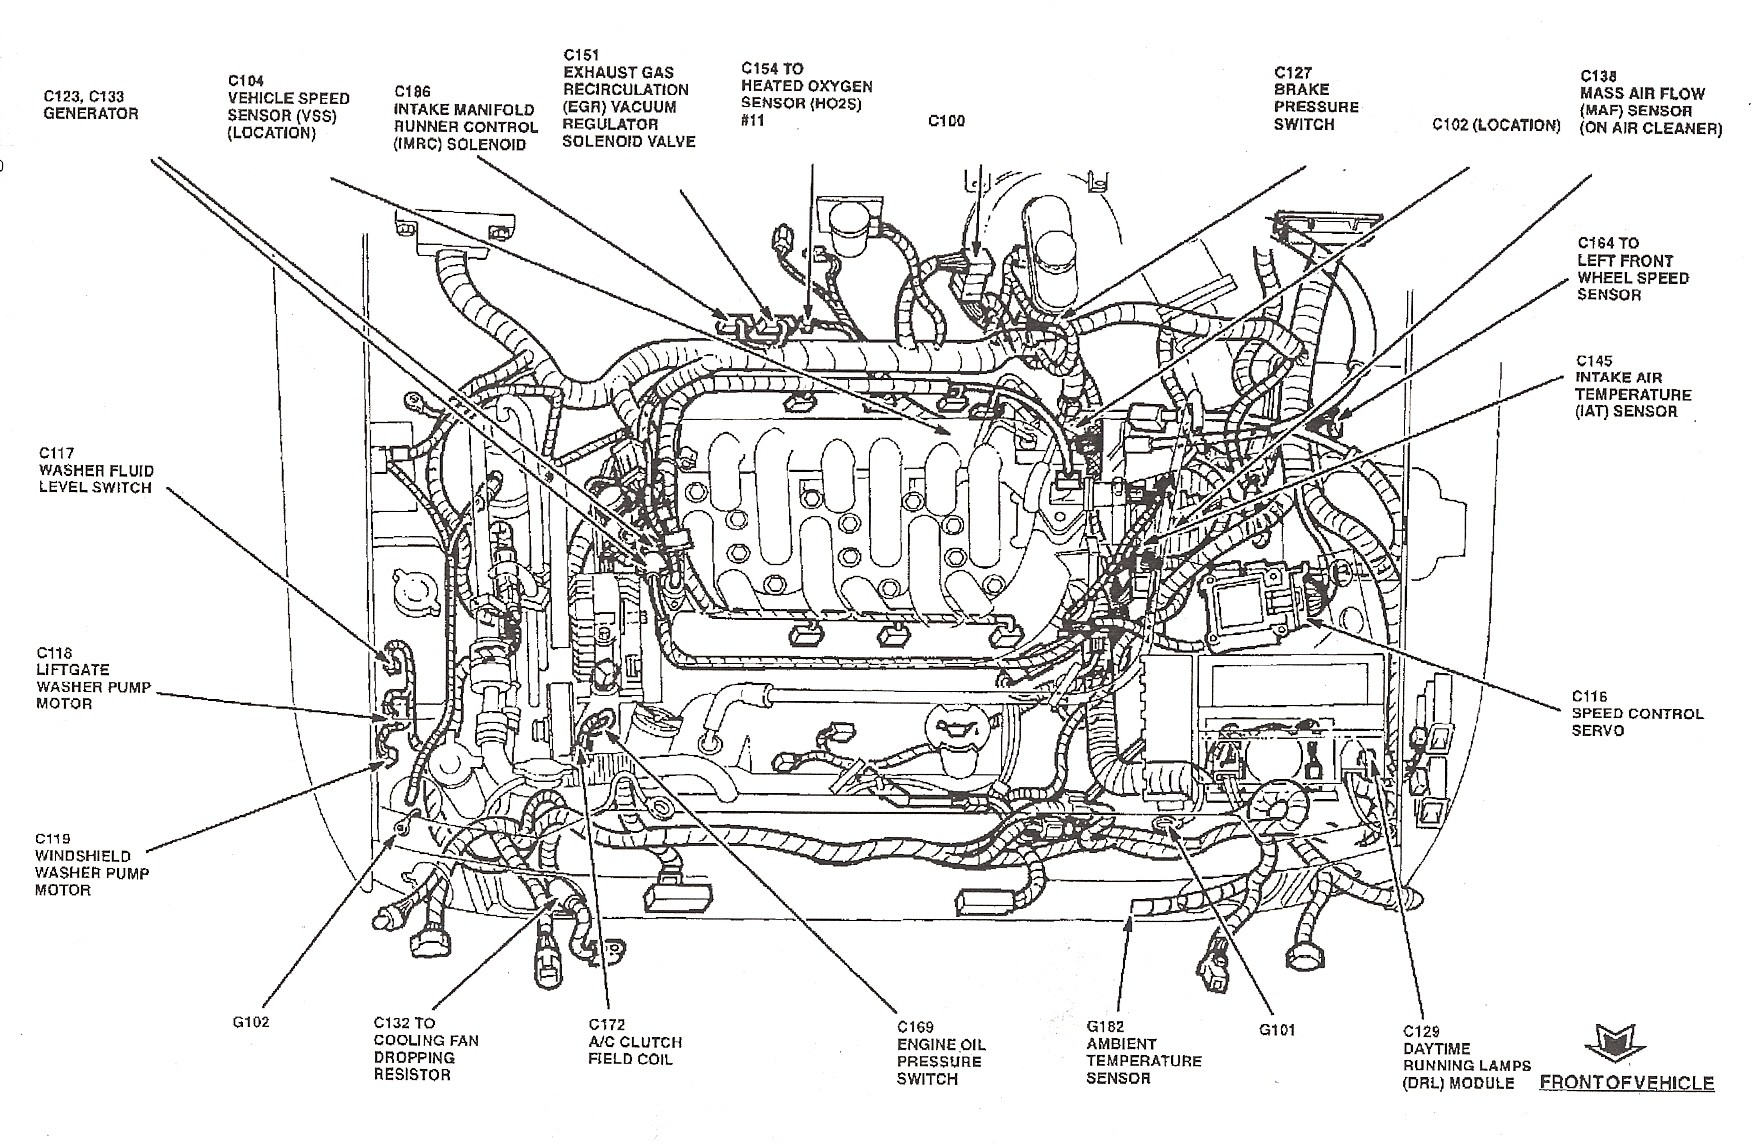 2002 Ford Focus Zetec Engine Diagram • Wiring Diagram For Free